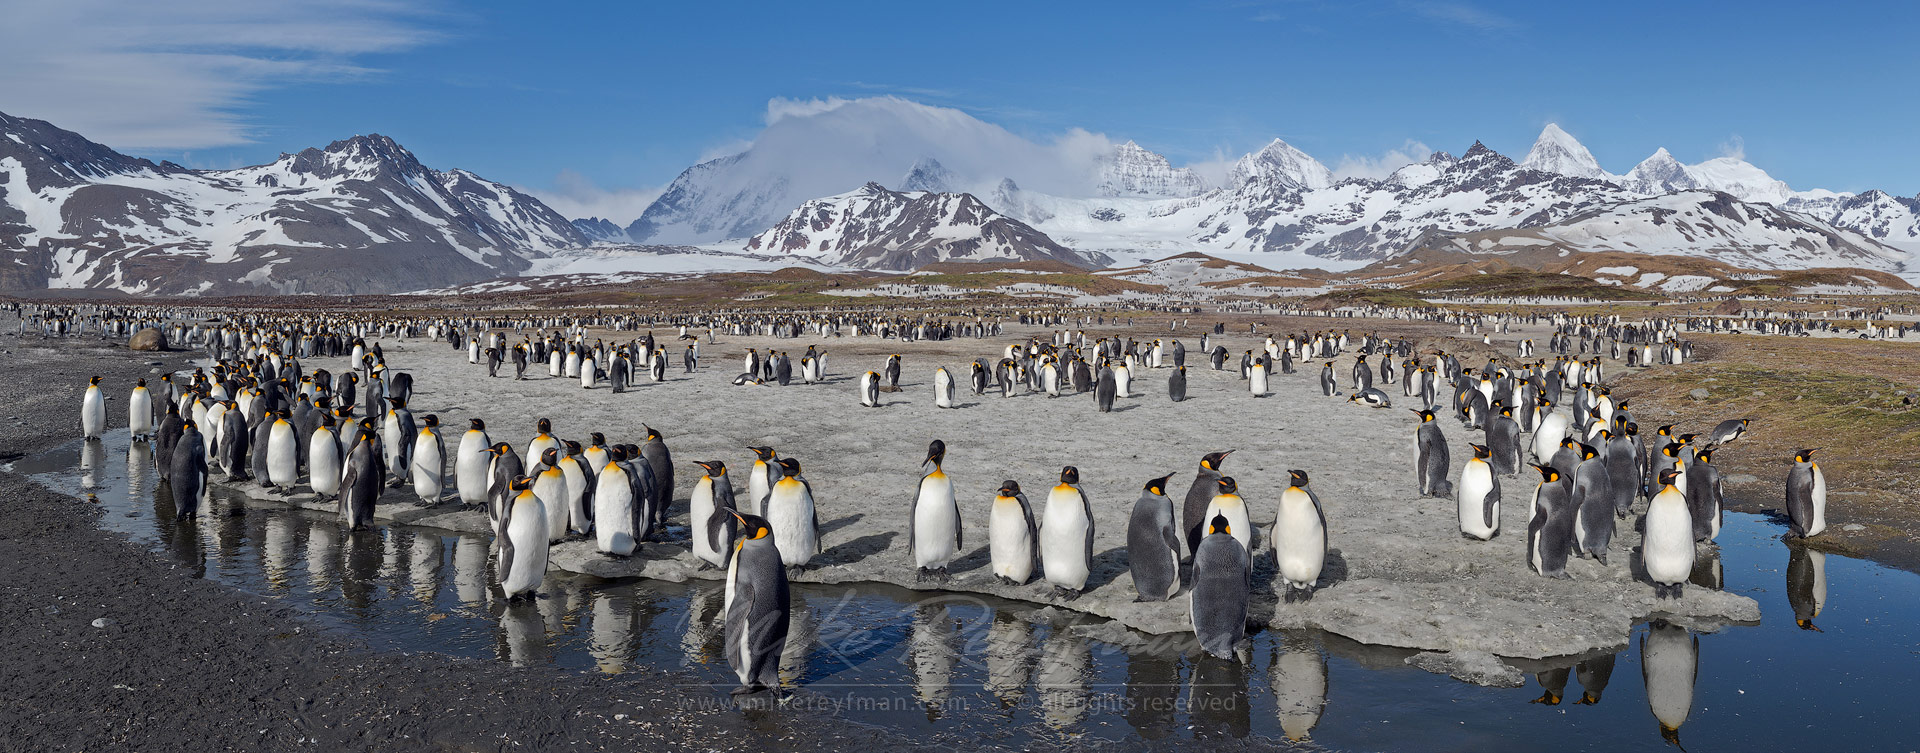 Terra Penguinia. King Penguin (Aptenodytes patagonicus) Colony, Salisbury Plain, South Georgia, Sub-Antarctic. Panoramic - King-Penguins-South-Georgia-Sub-Antarctic - Mike Reyfman Photography